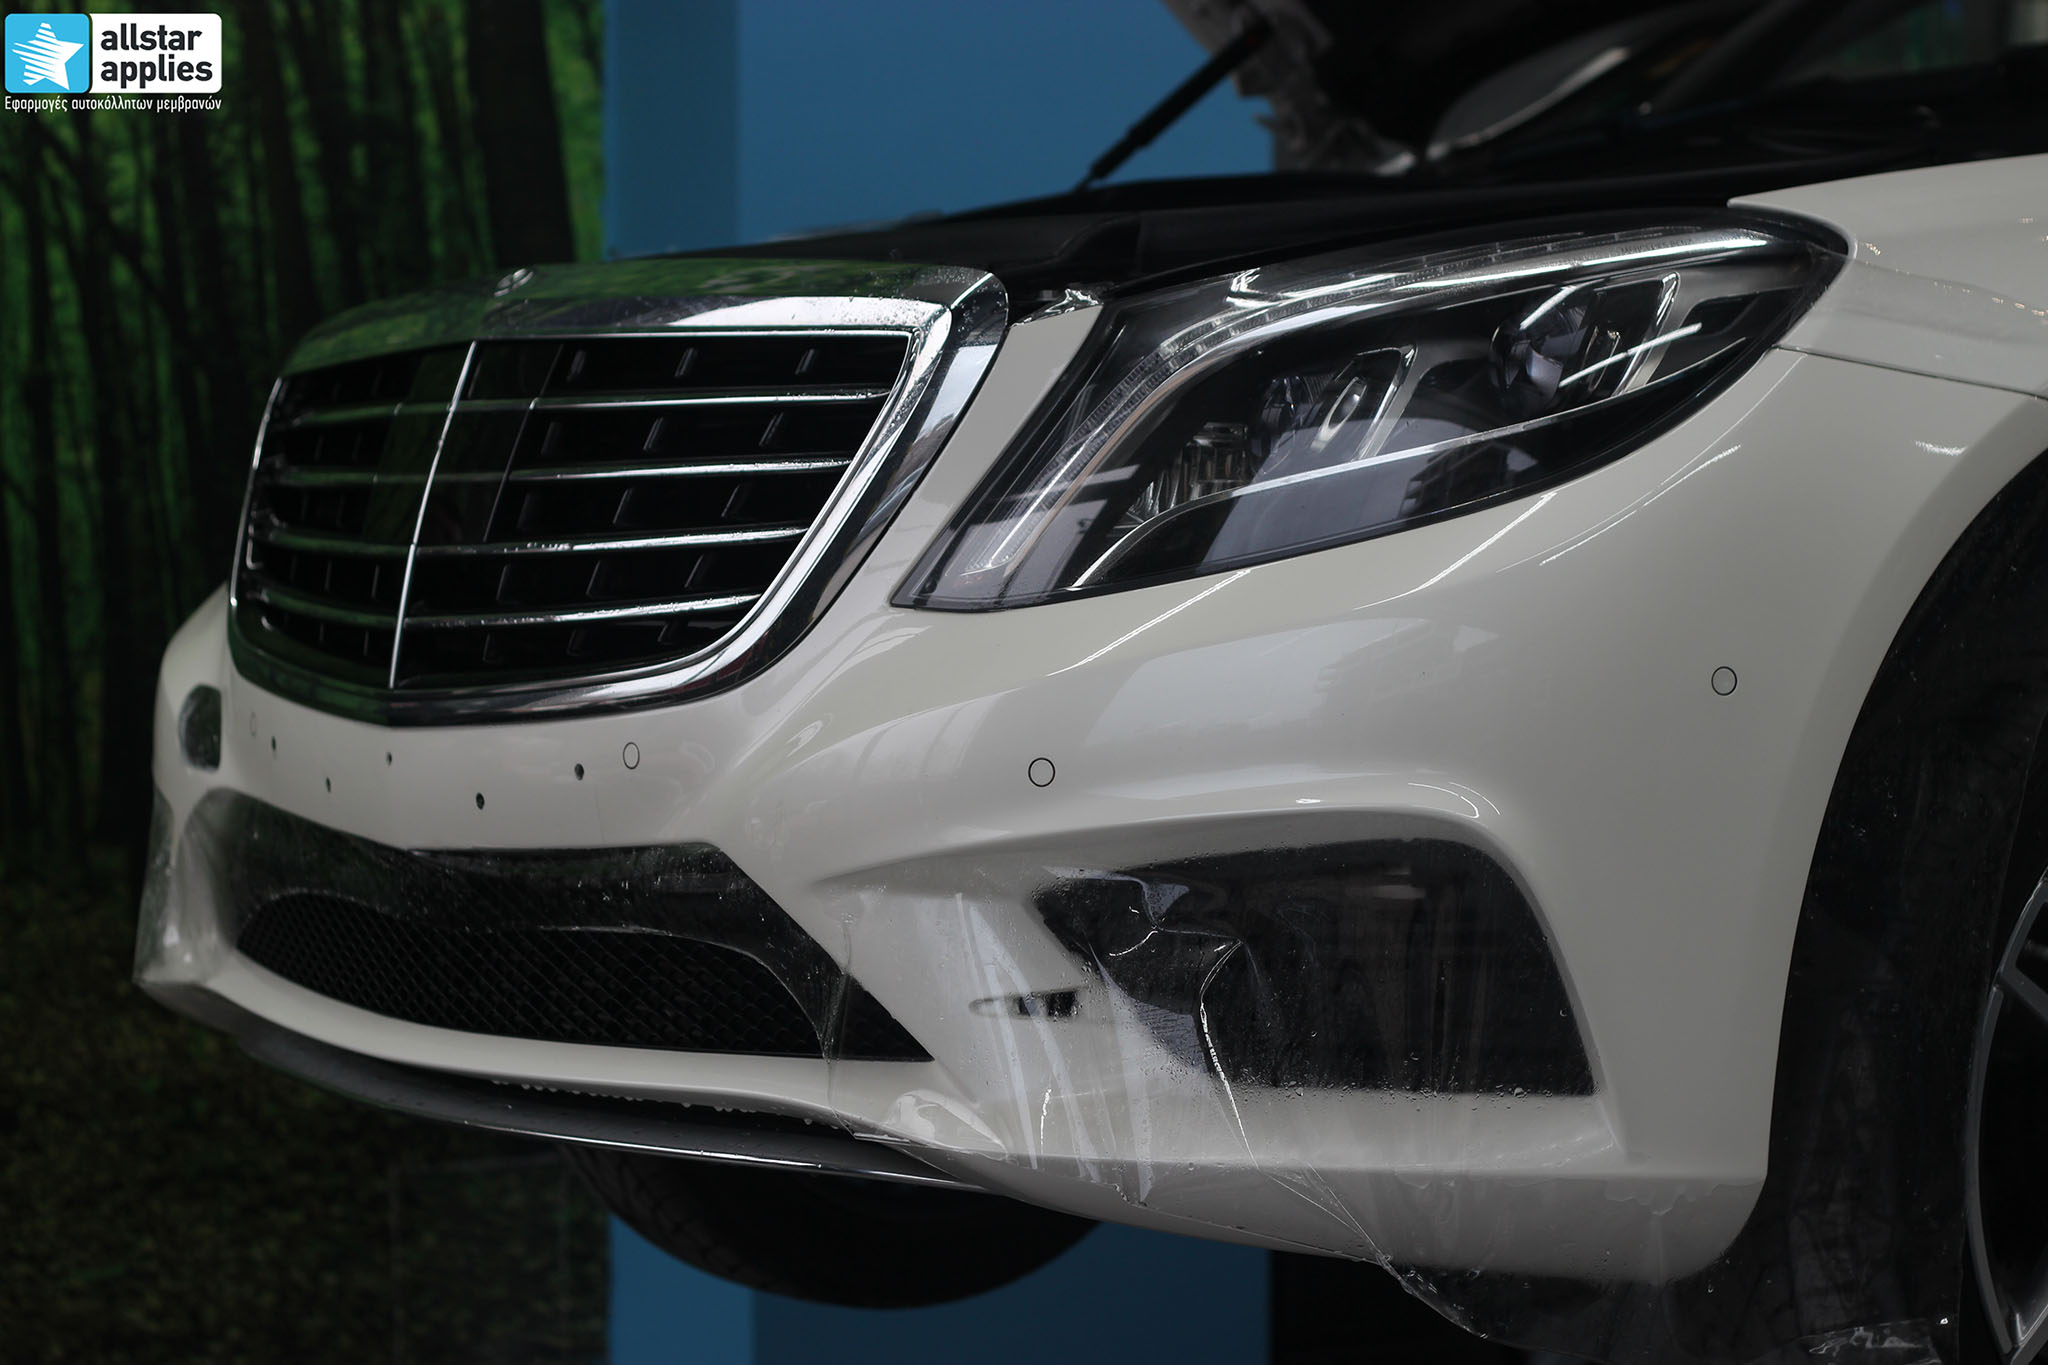 Mercedes S500 AMG - Paint Protection Film (7)